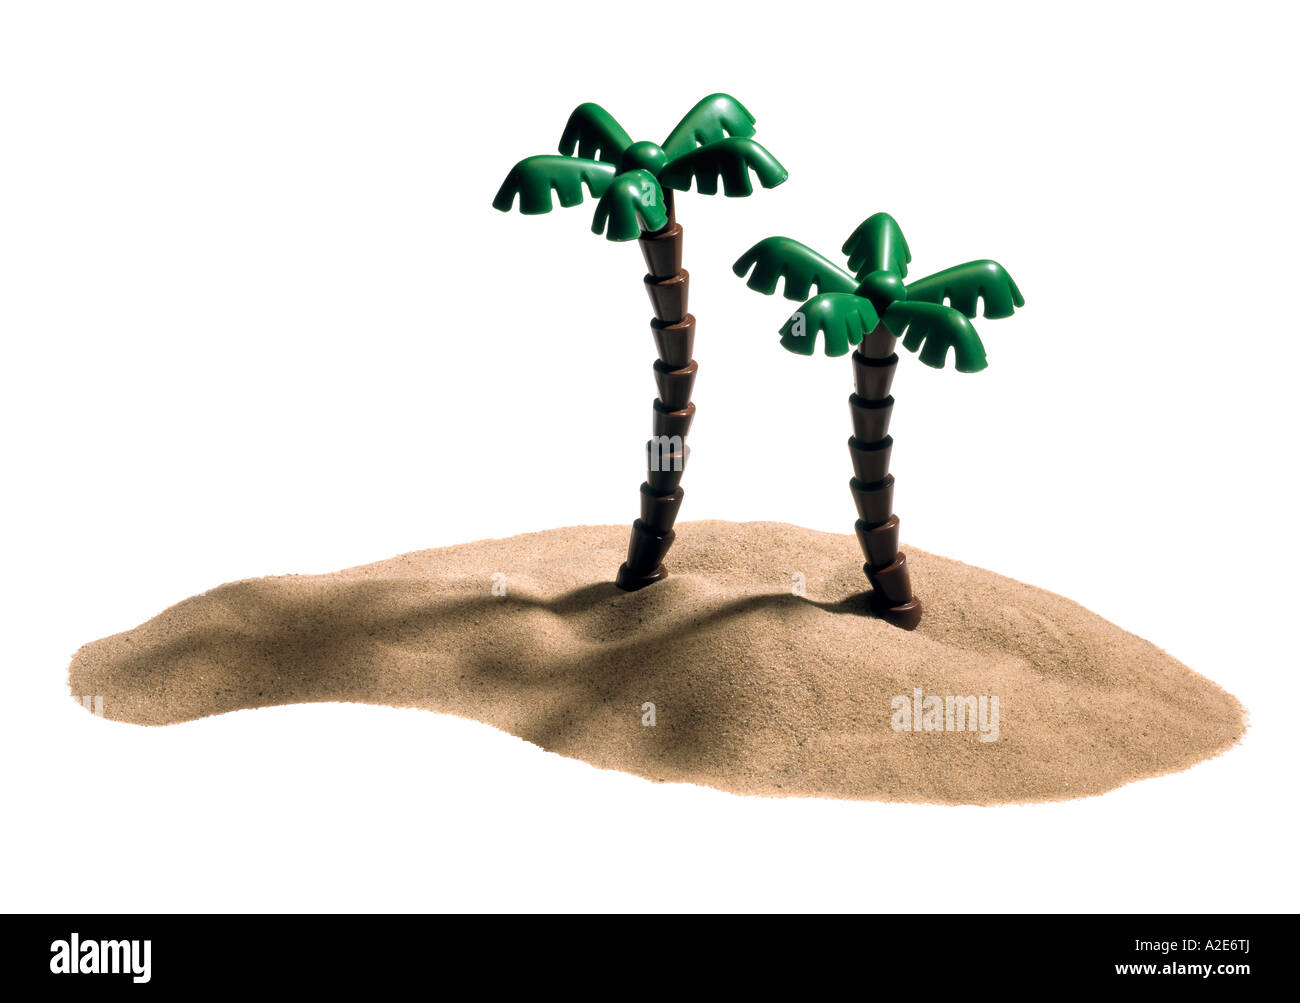 A sand desert island with two toy palm trees - Stock Image